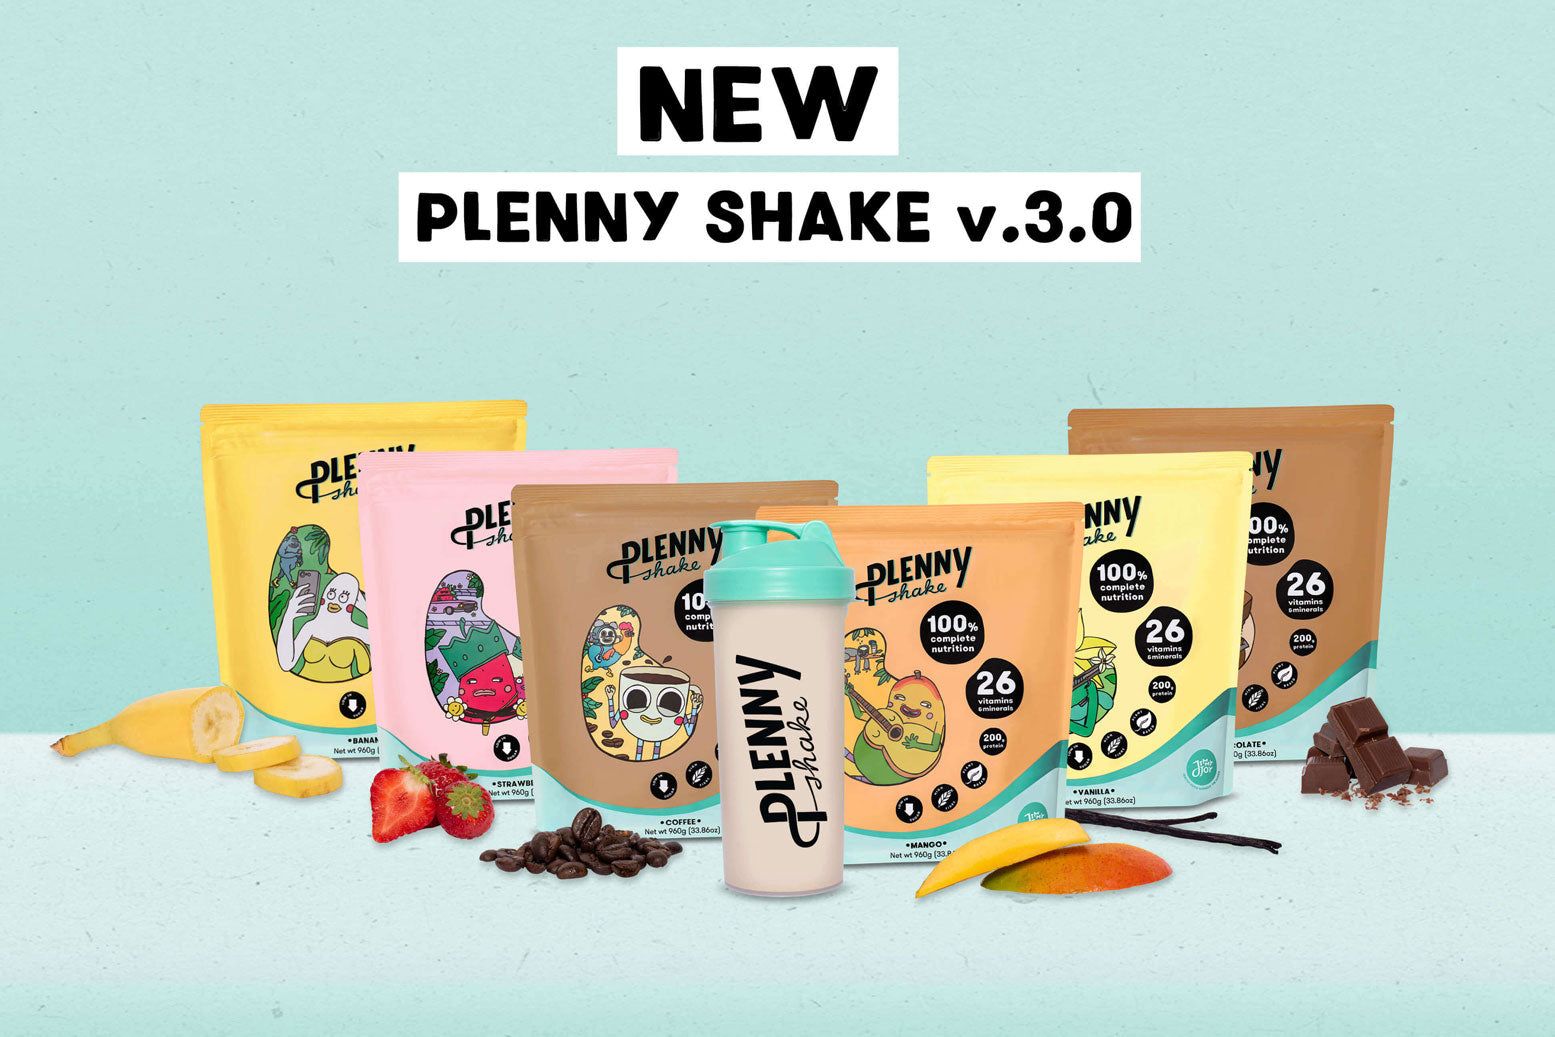 Jimmy Joy new Plenny Shake 3.0